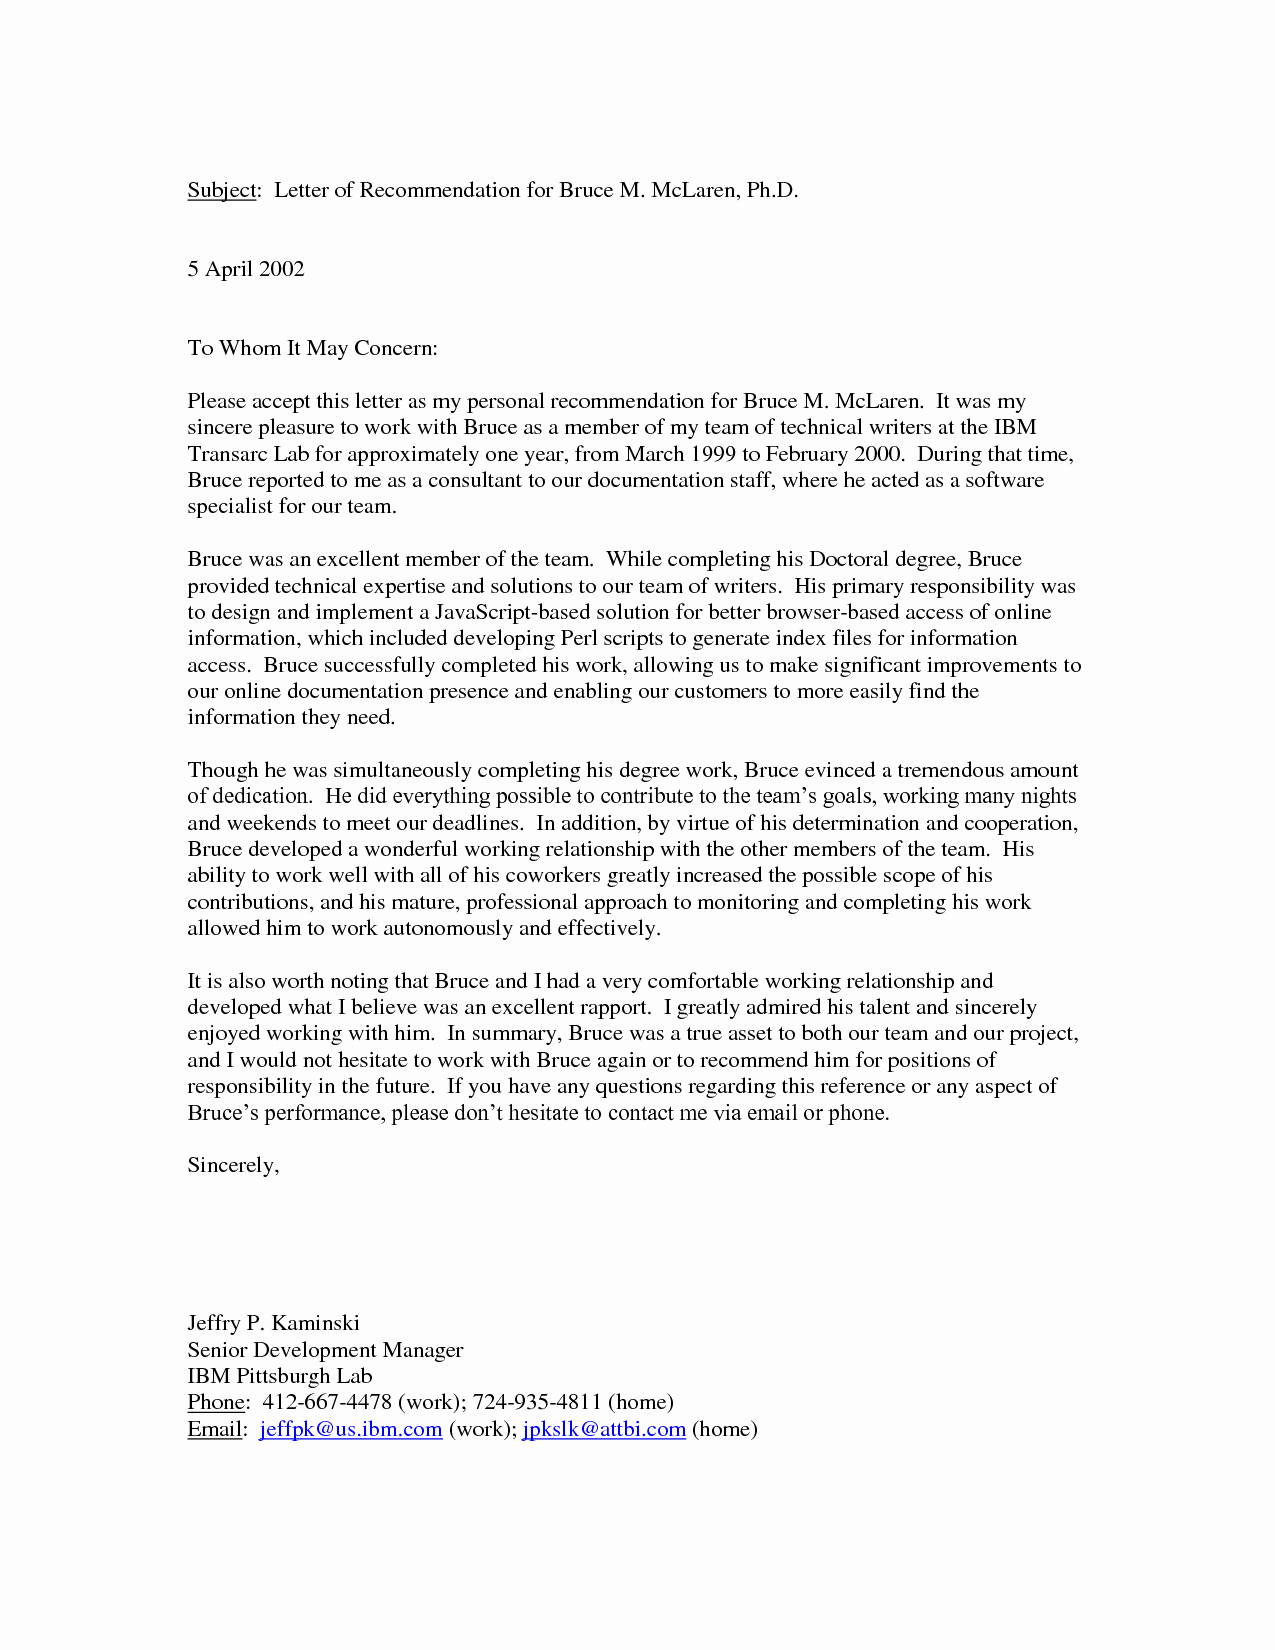 Sample Professional Letter Of Recommendation Luxury Personal Letter Re Mendation